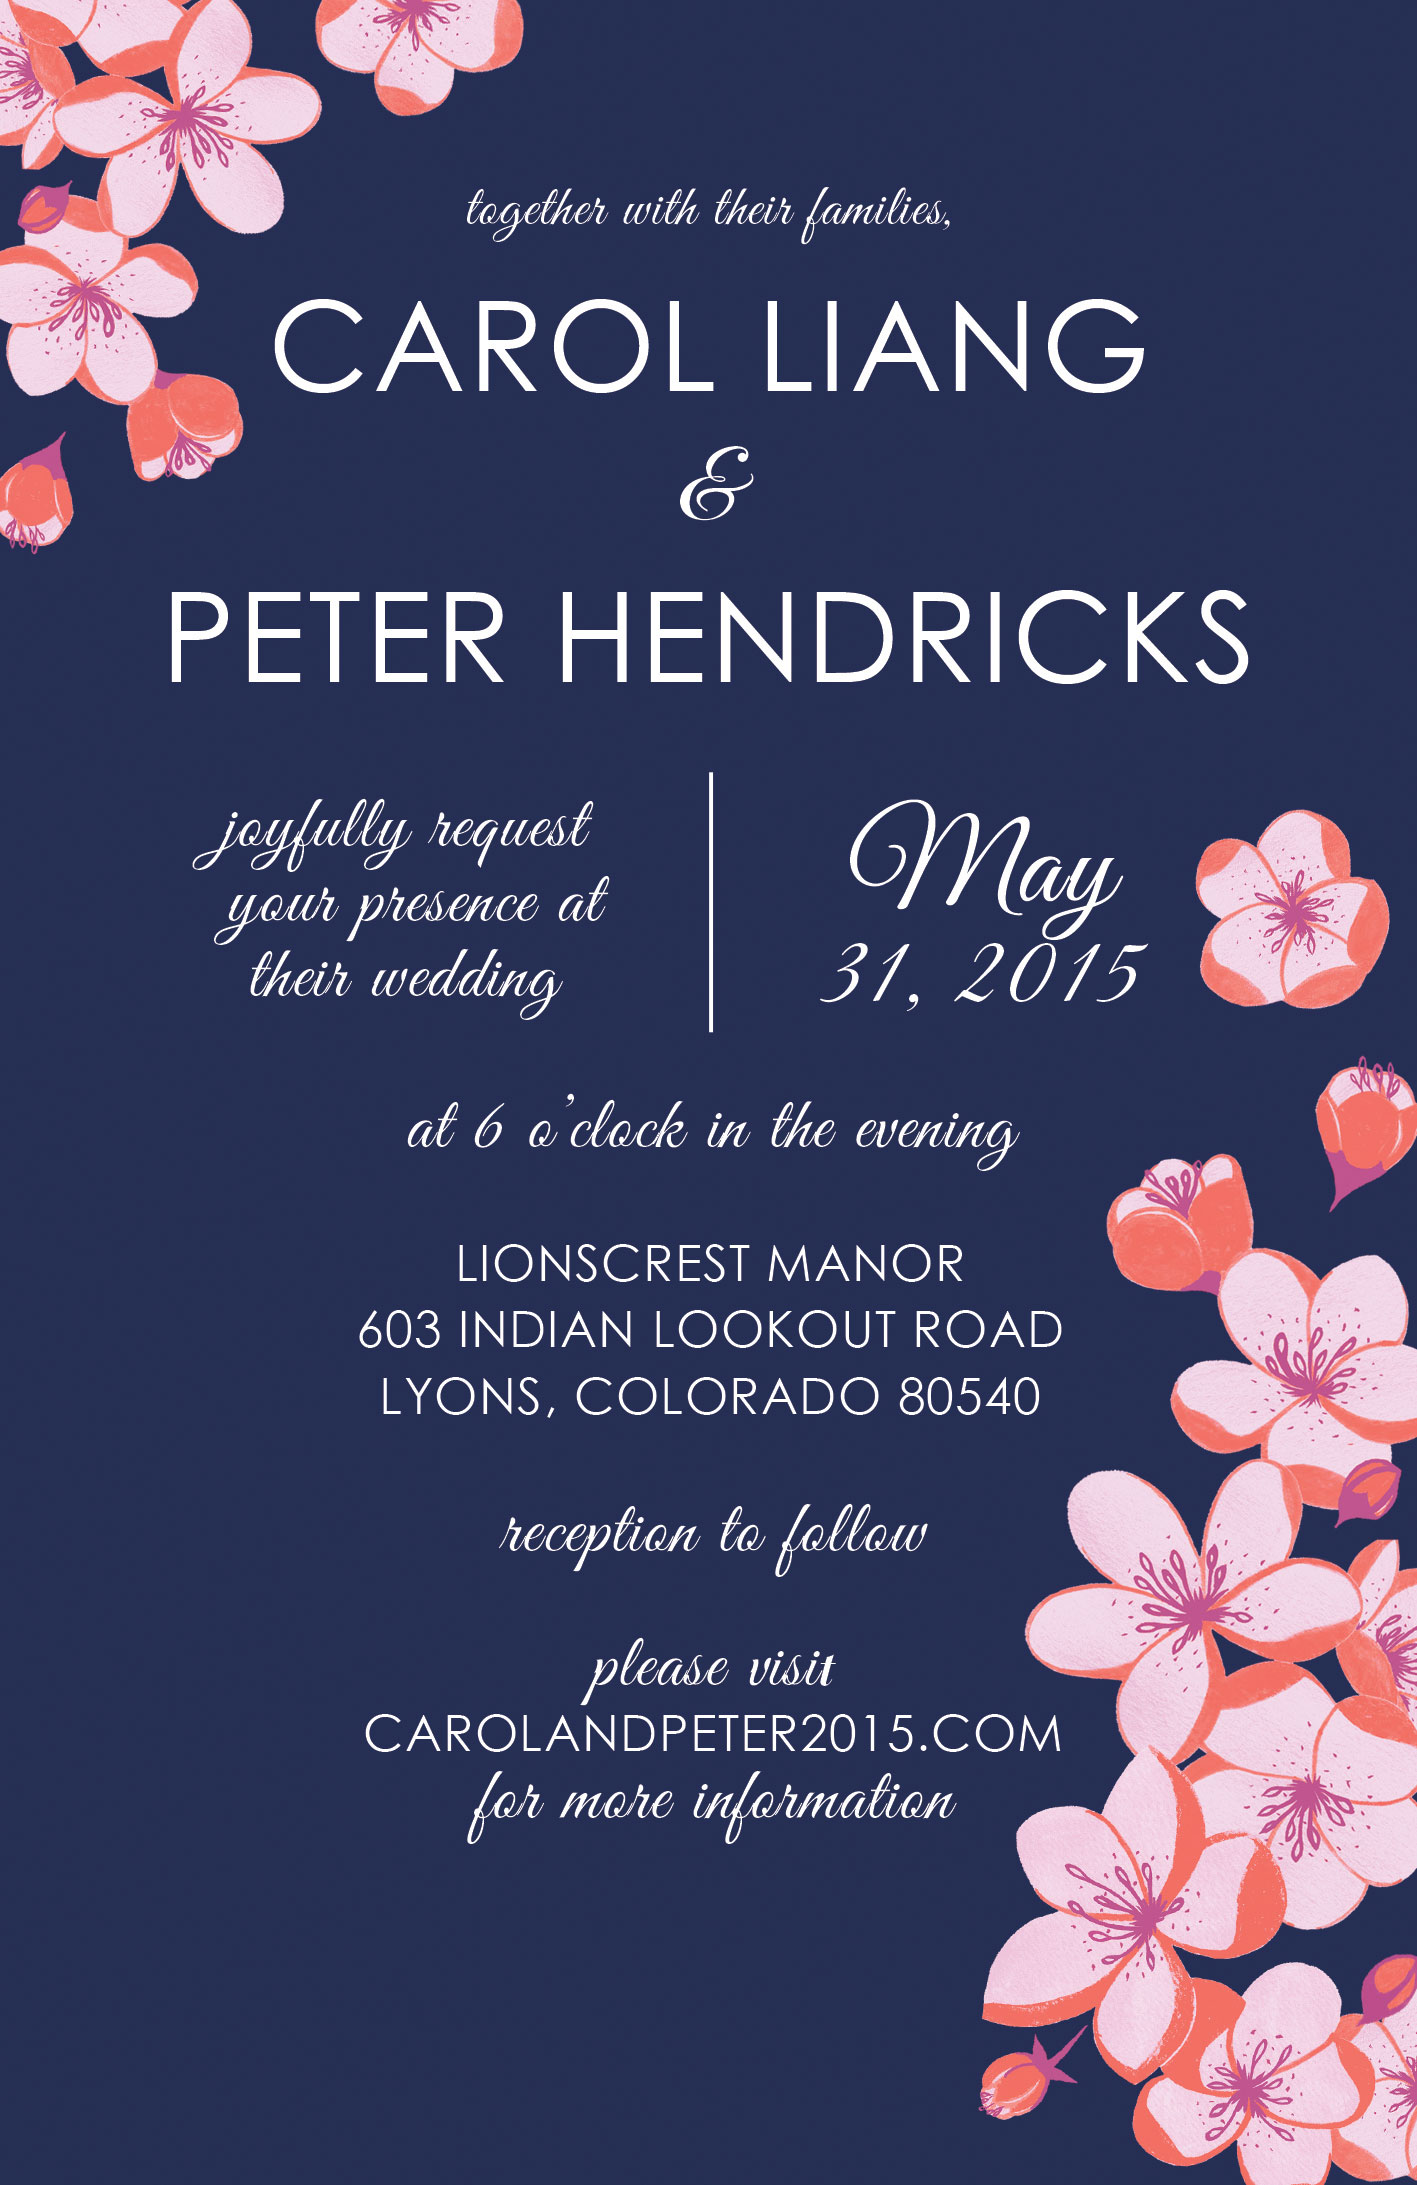 Liang + Hendricks Wedding Invitation